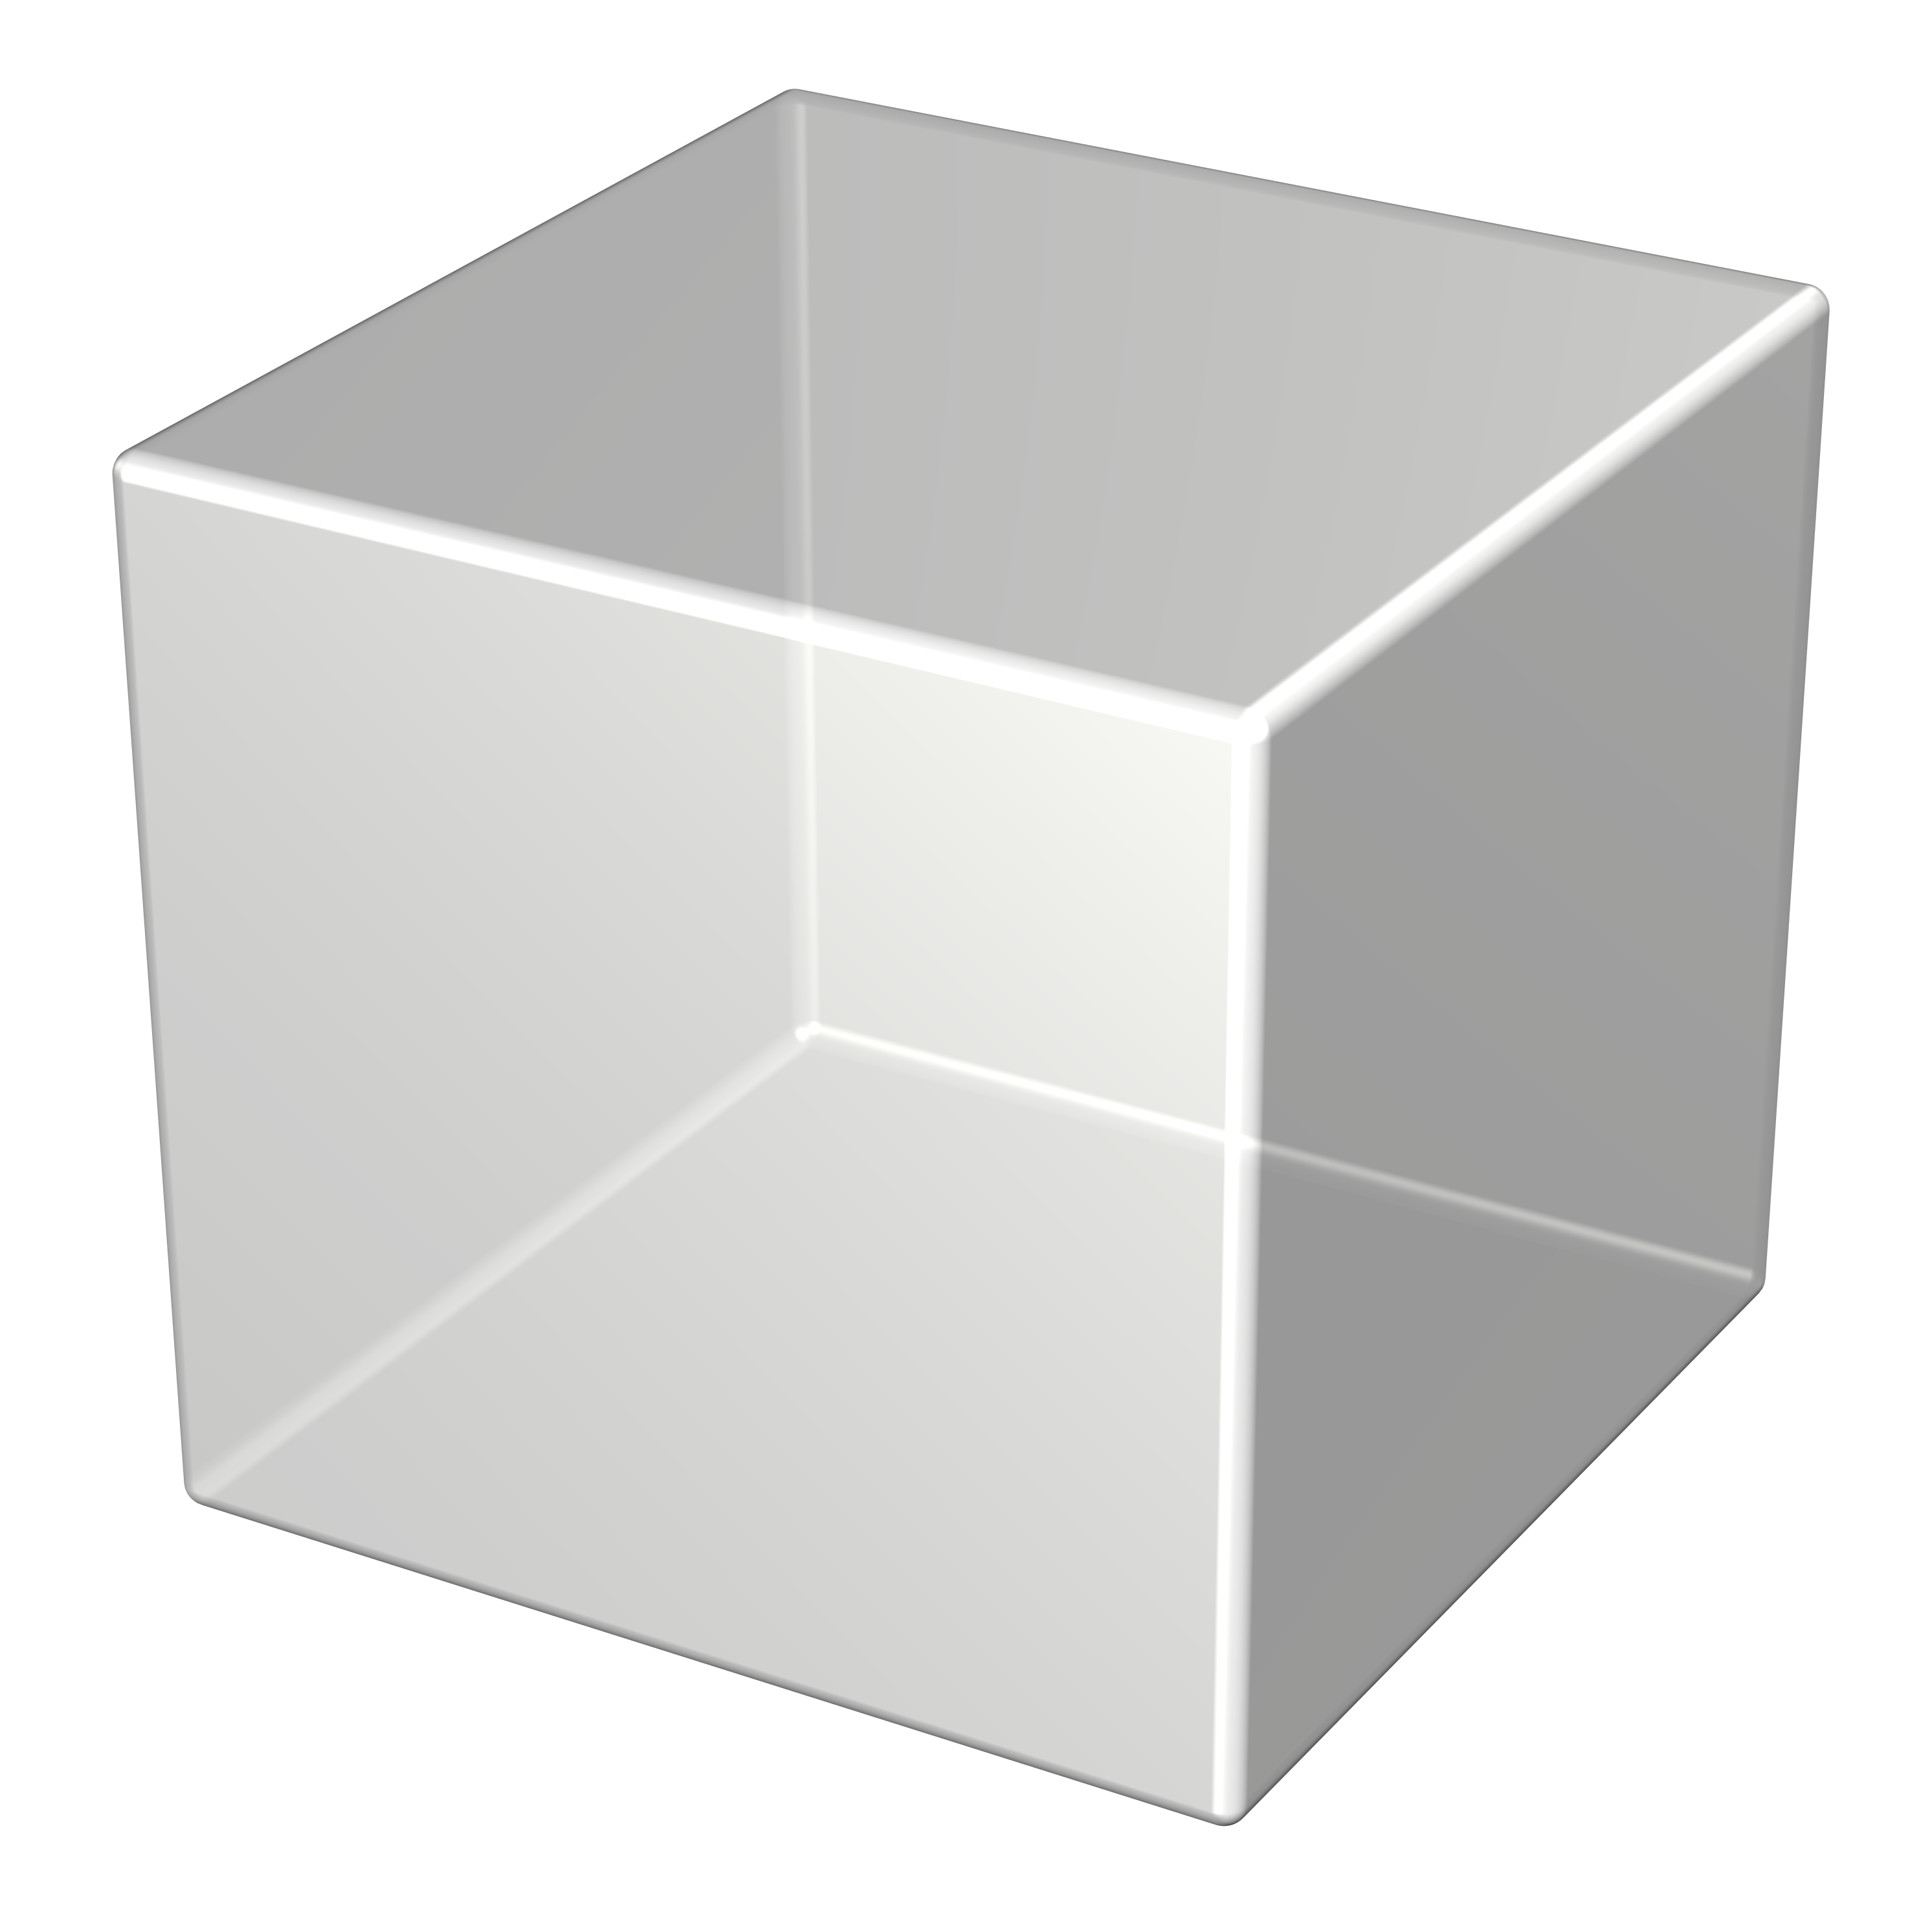 royalty free Cube transparent. High resolution renderings of